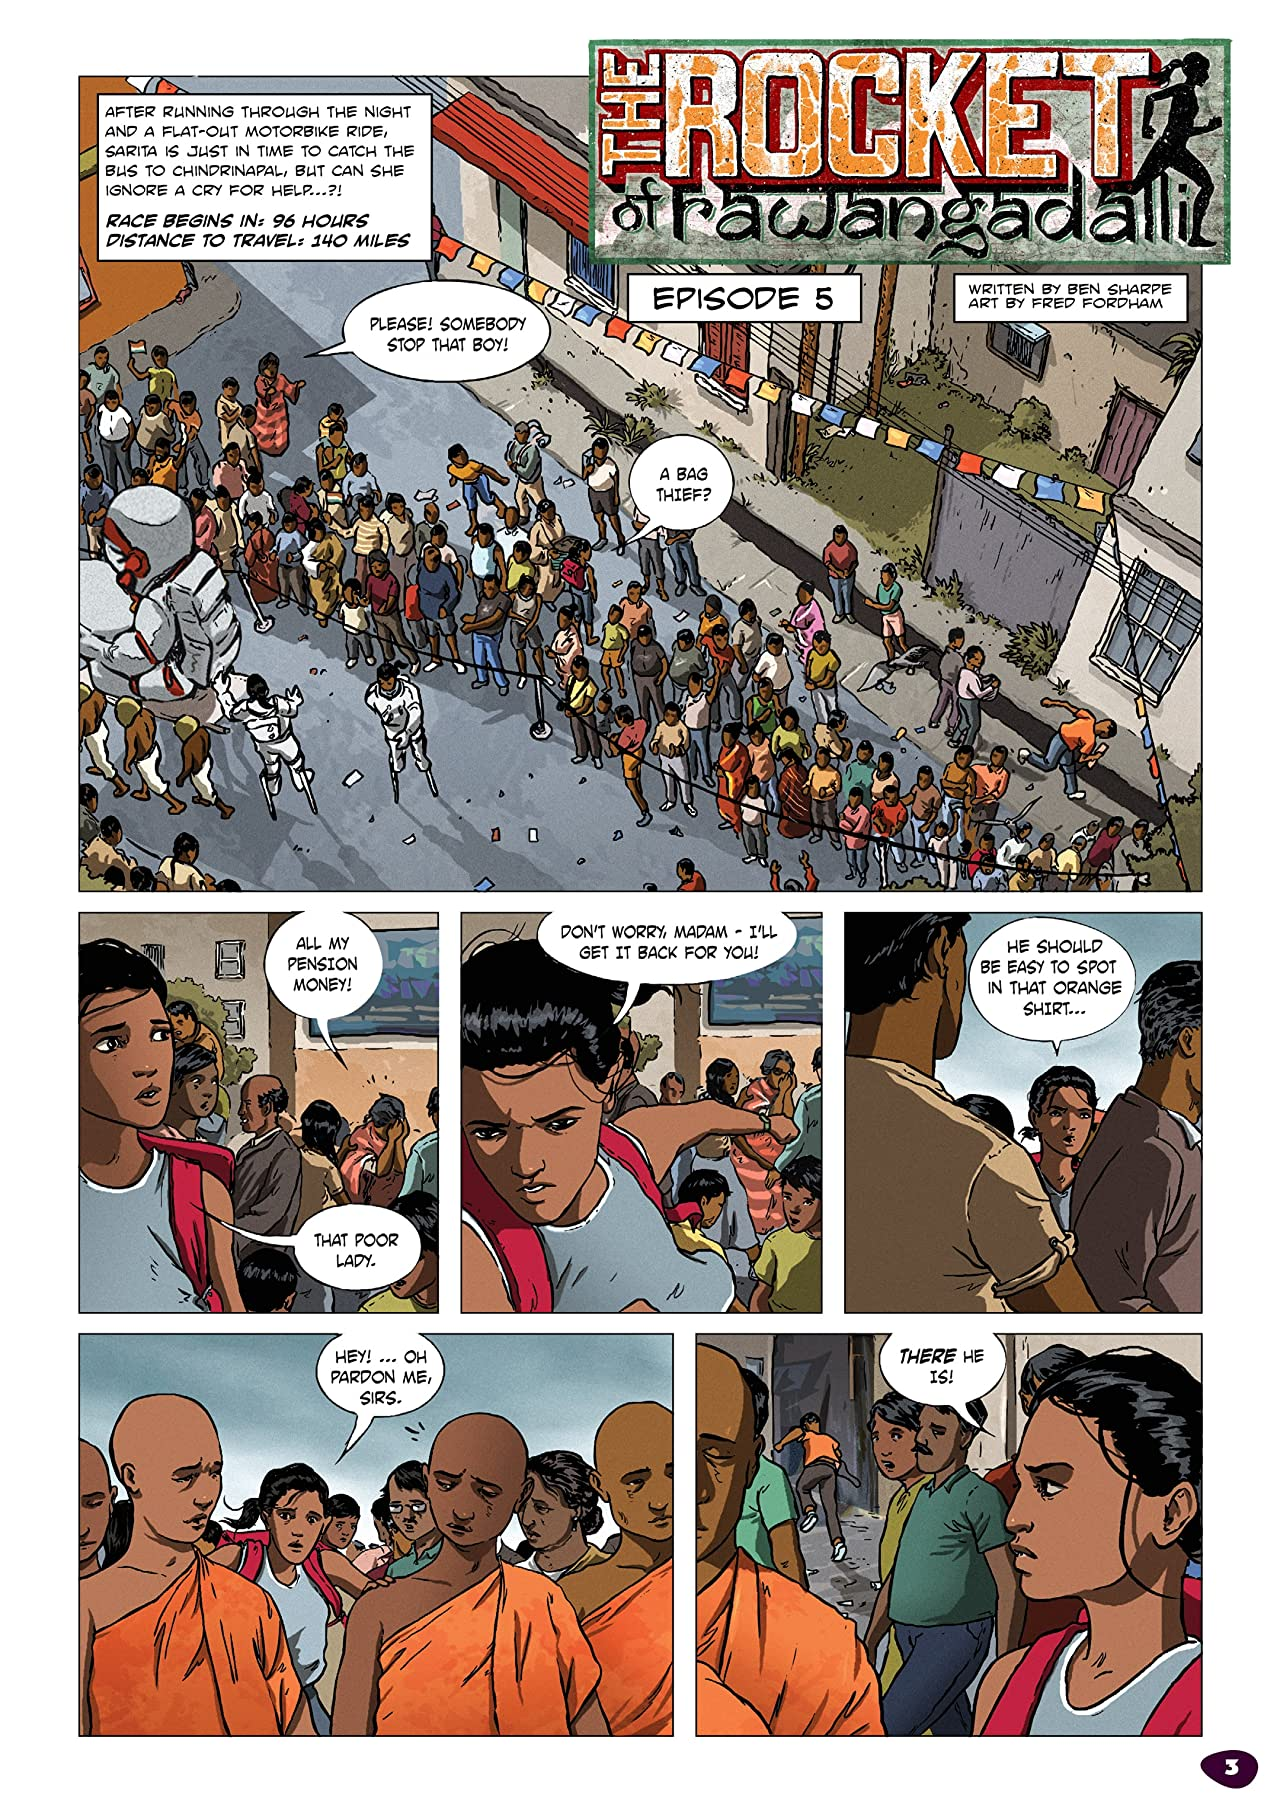 The Phoenix #162: The Weekly Story Comic